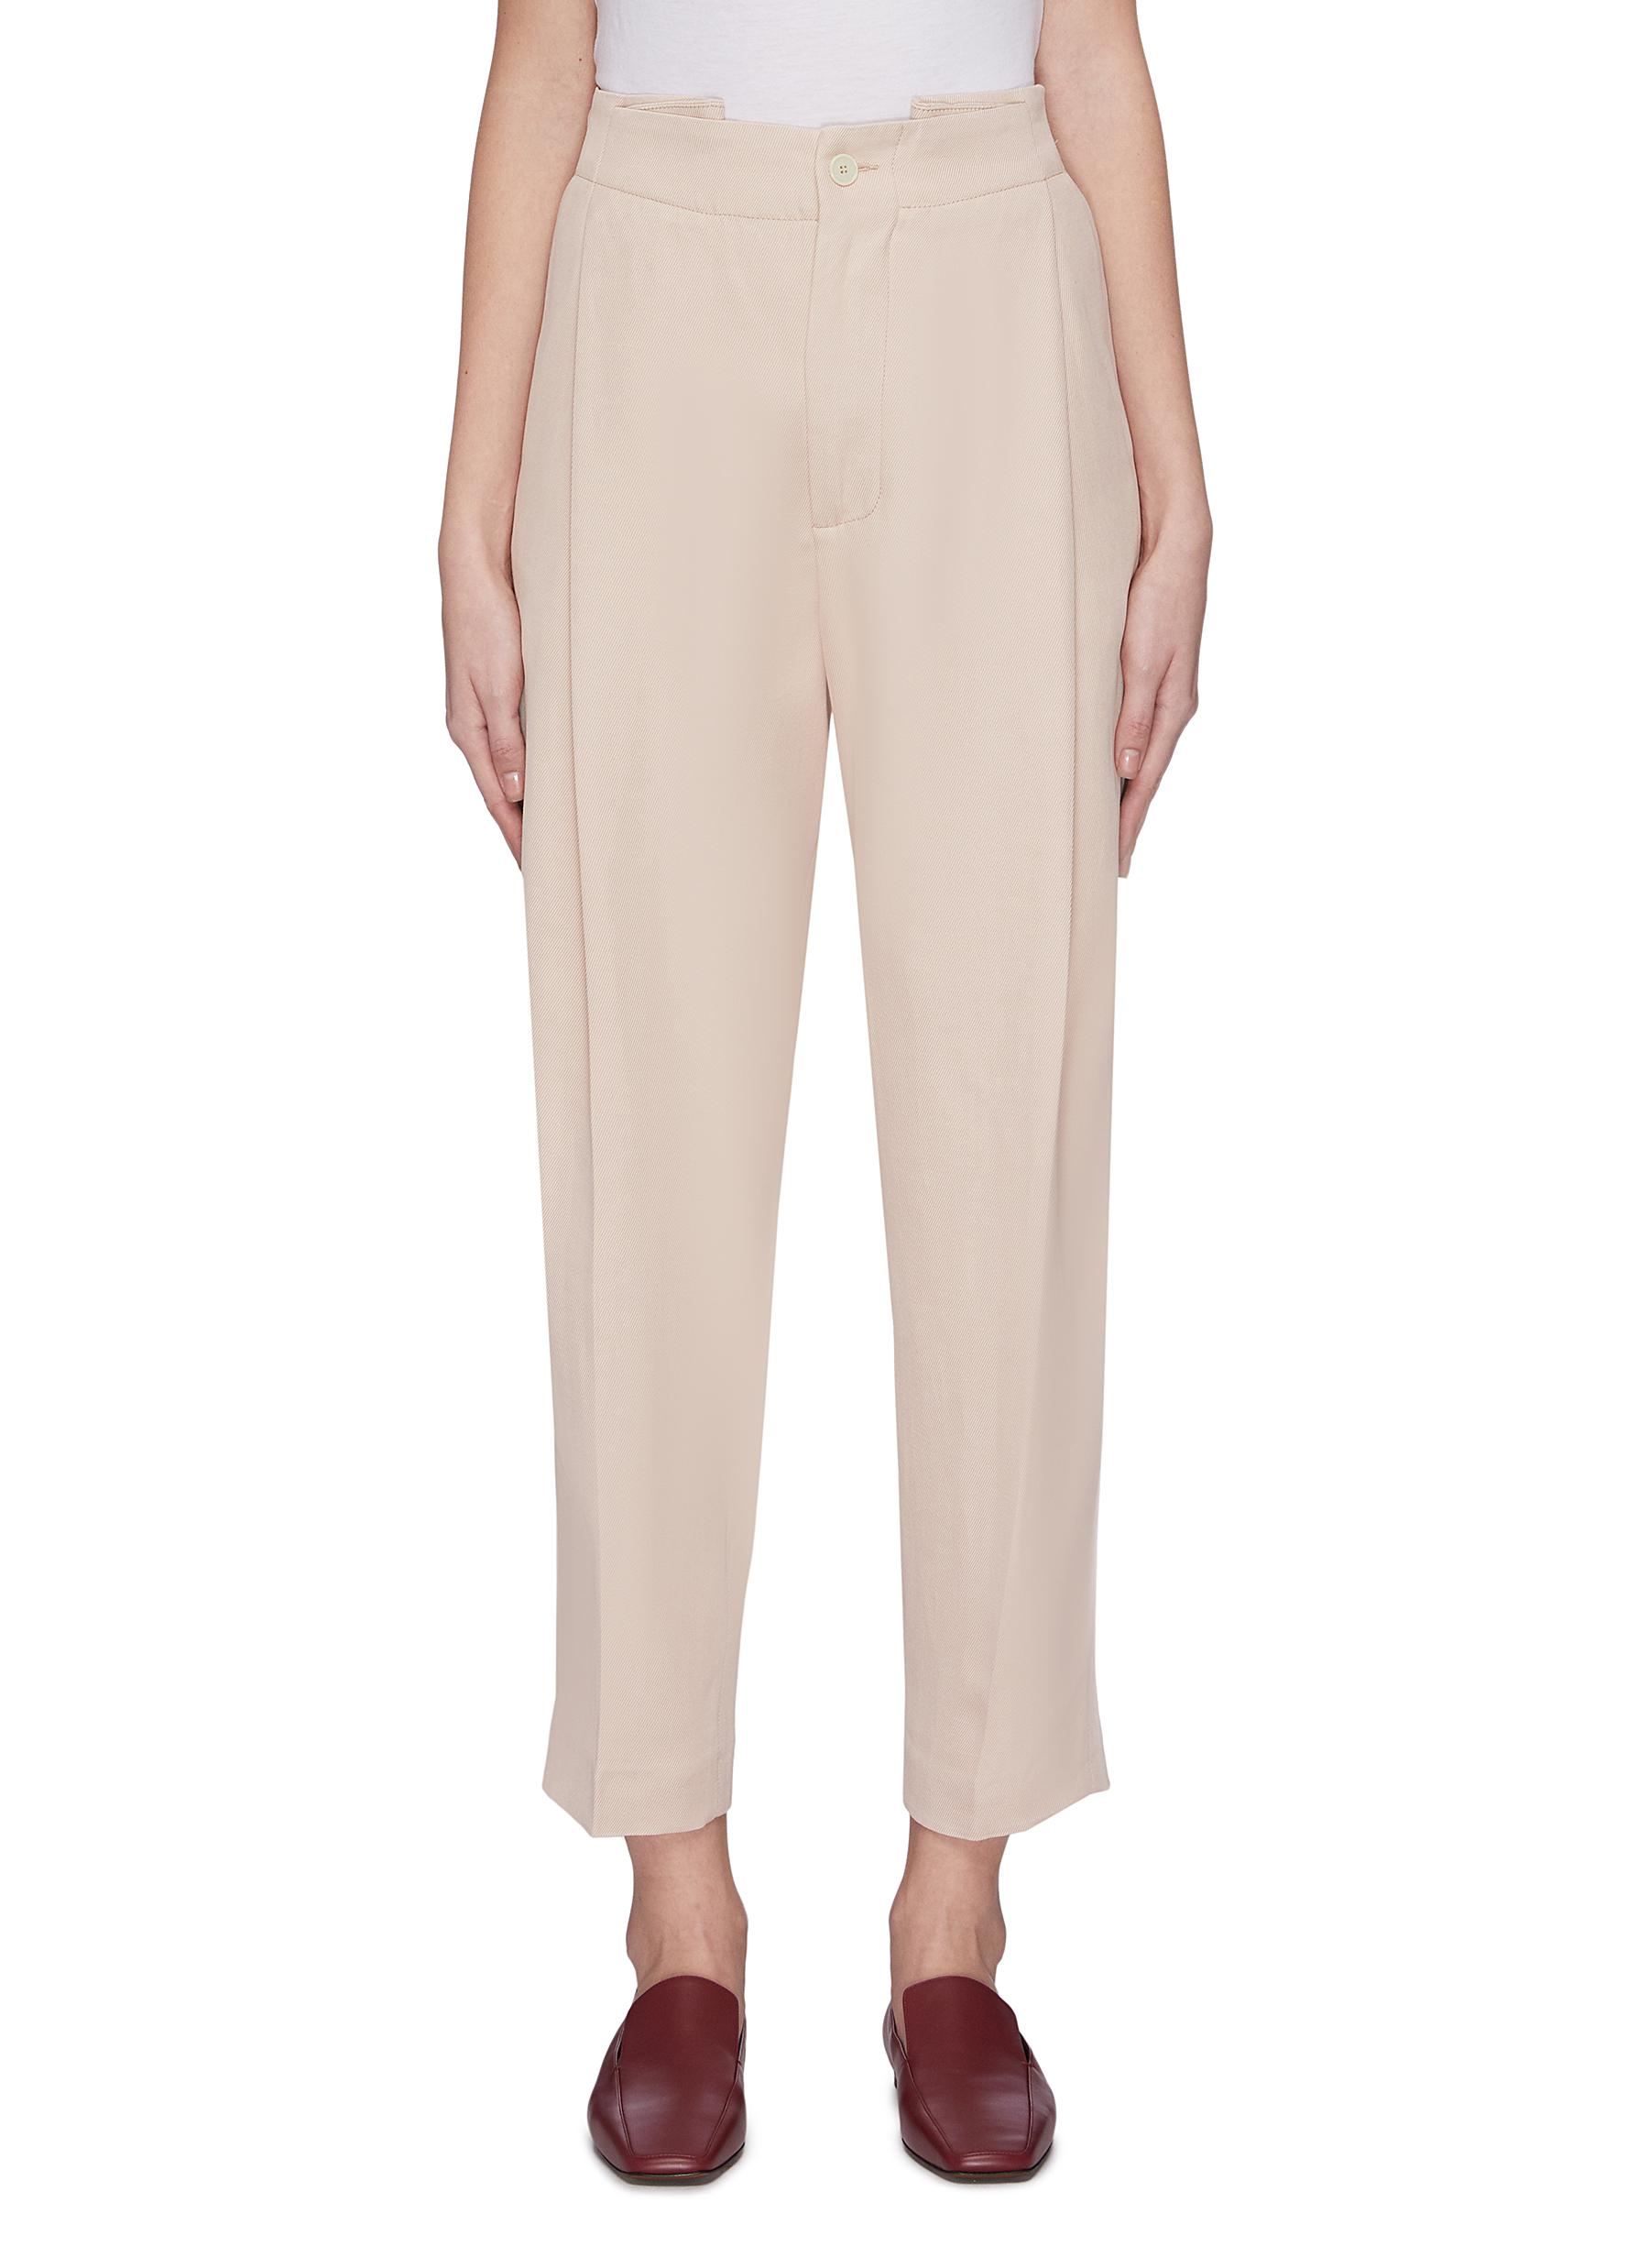 Buy Barena Pants & Shorts 'Vittoria Renier' pleated suiting pants